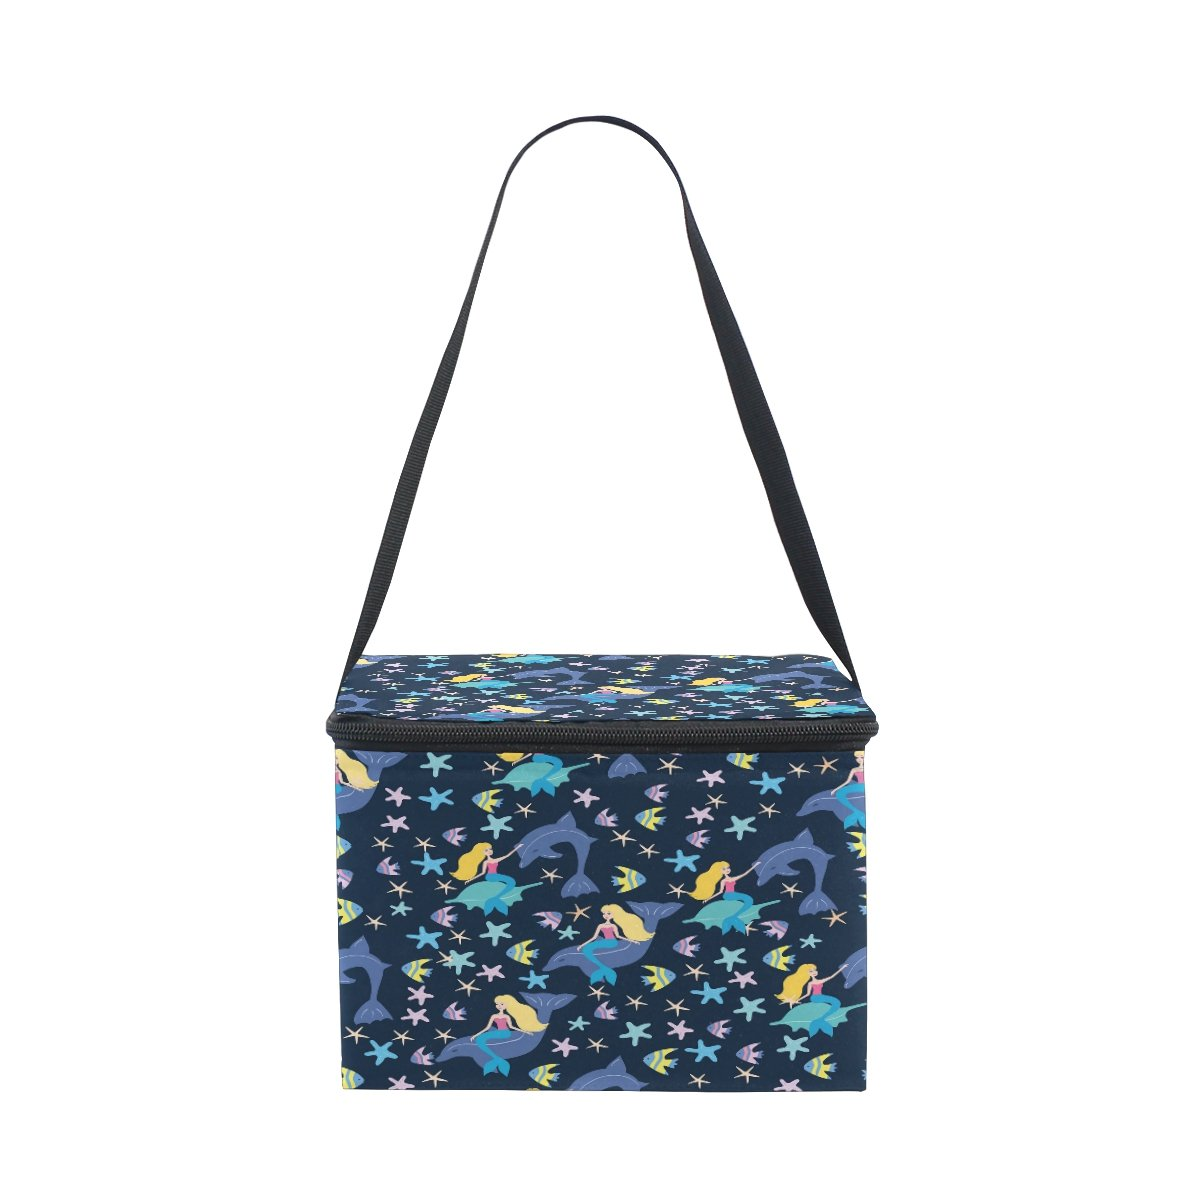 ALAZA Mermaid Dolphin Insulated Lunch Bag Box Cooler Bag Reusable Tote Bag Outdoor Travel Picnic Bag With Shoulder Strap for Women Men Adults Kids